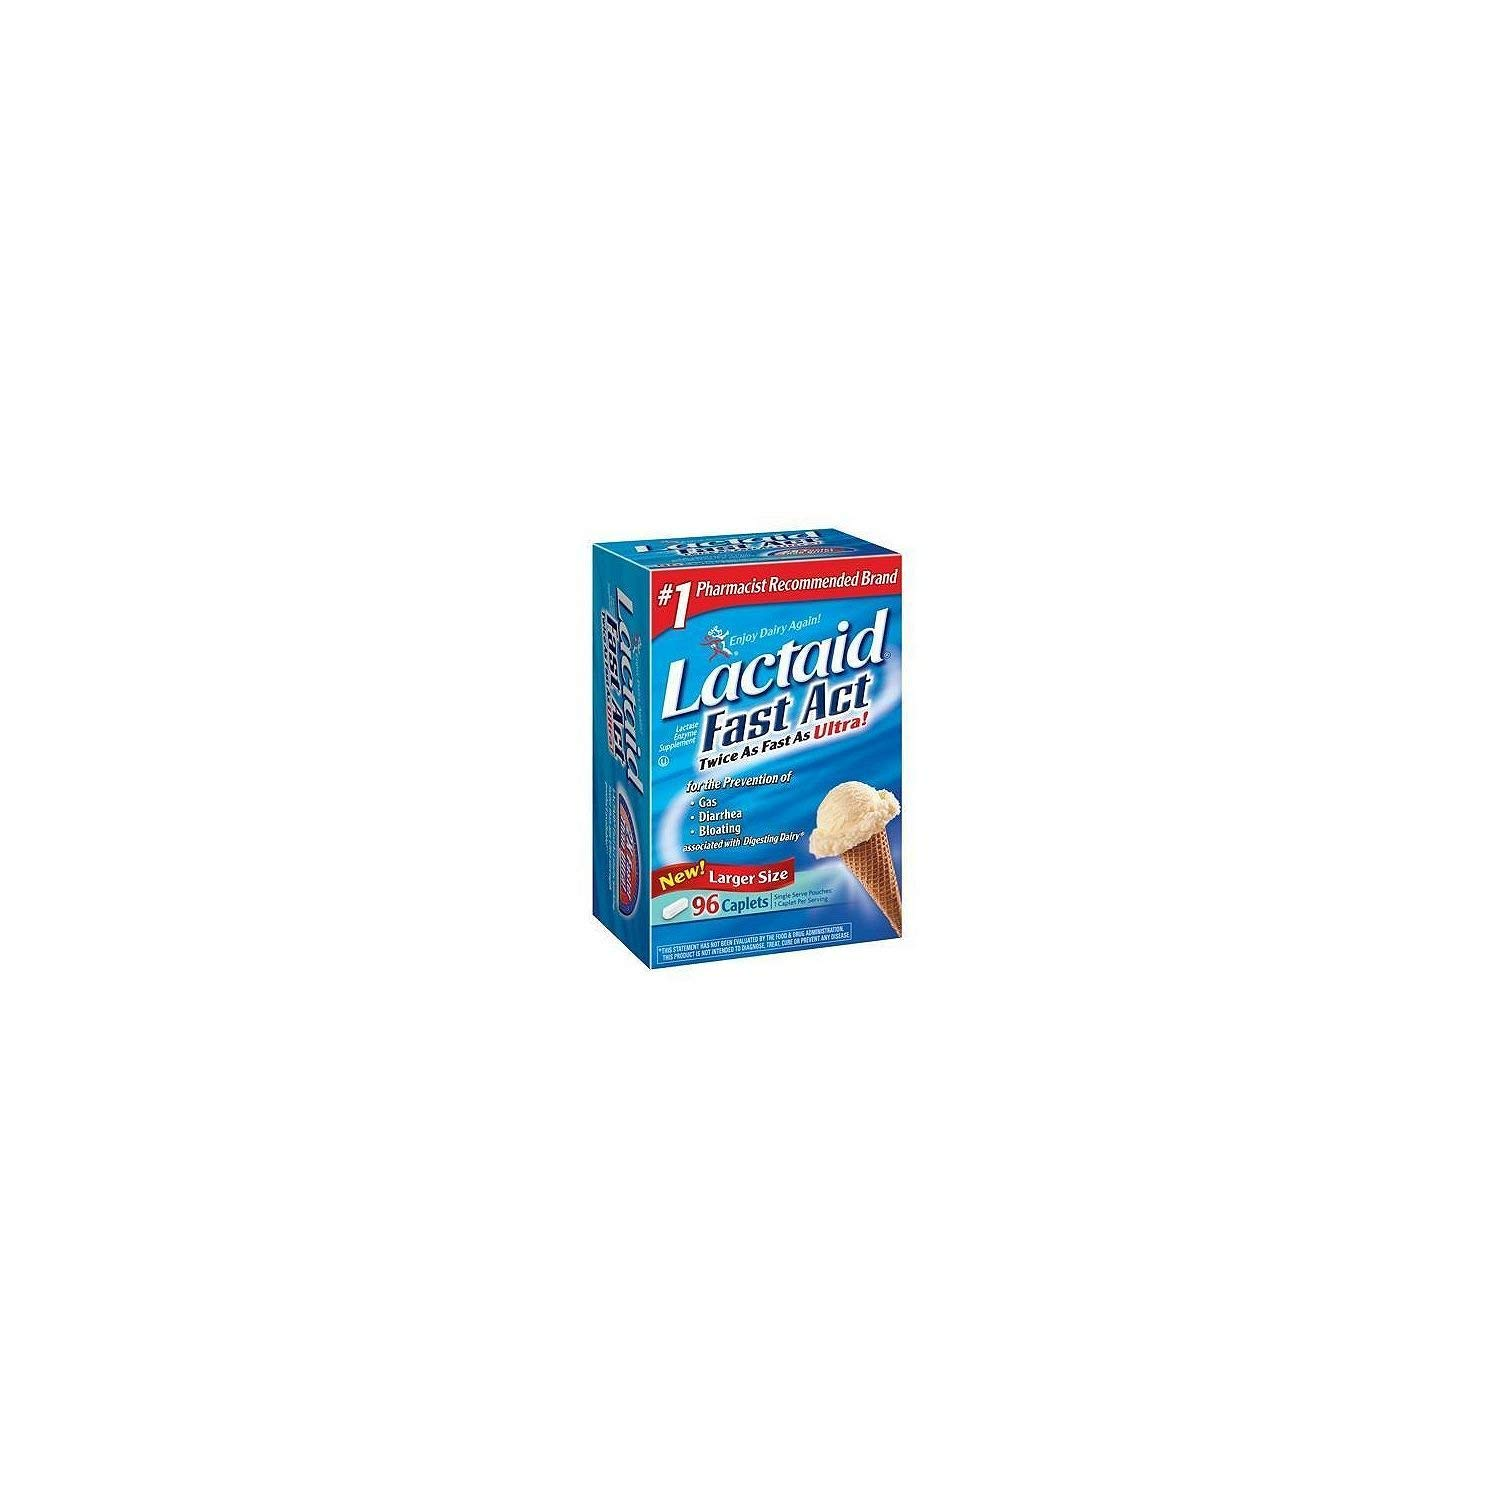 Lactaid Fast Act - 90 ct.